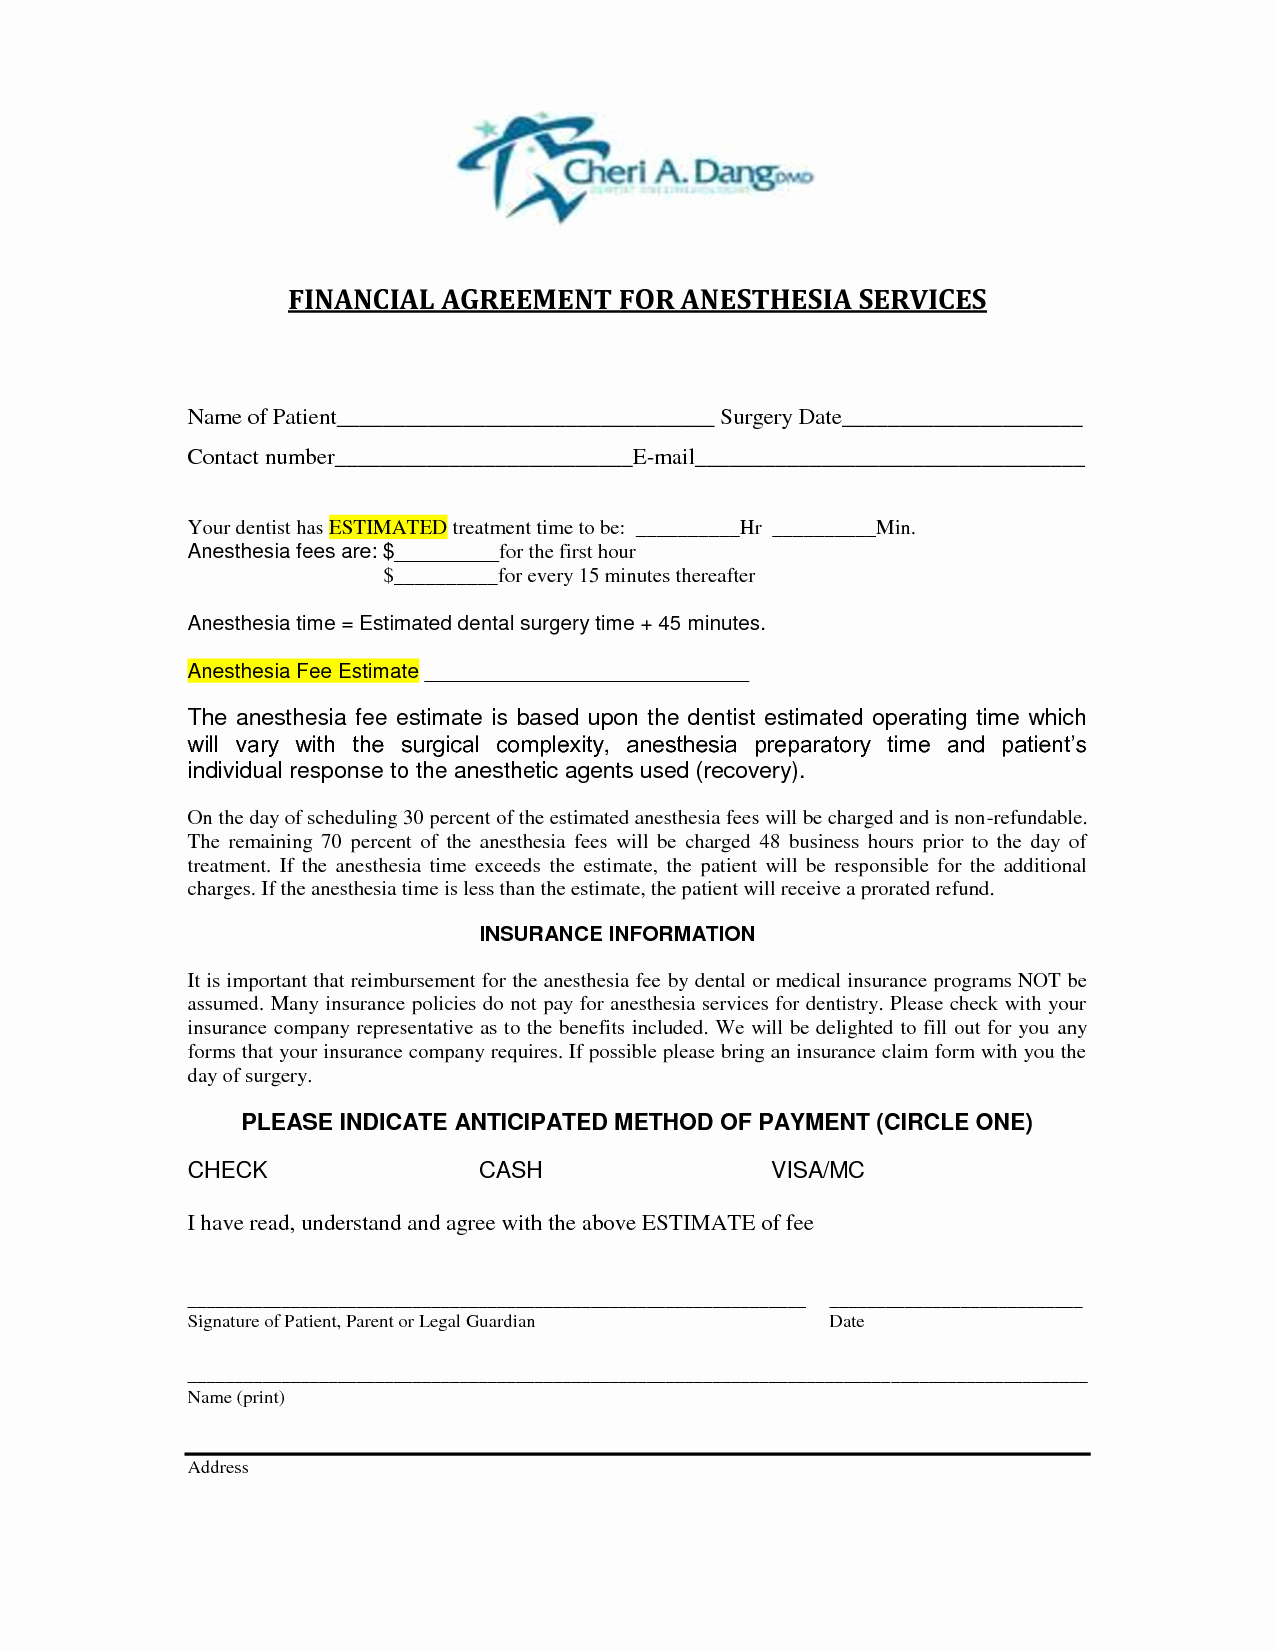 Dental Financial Agreement Template Lovely 6 Best Of Dental Financial Agreement Template